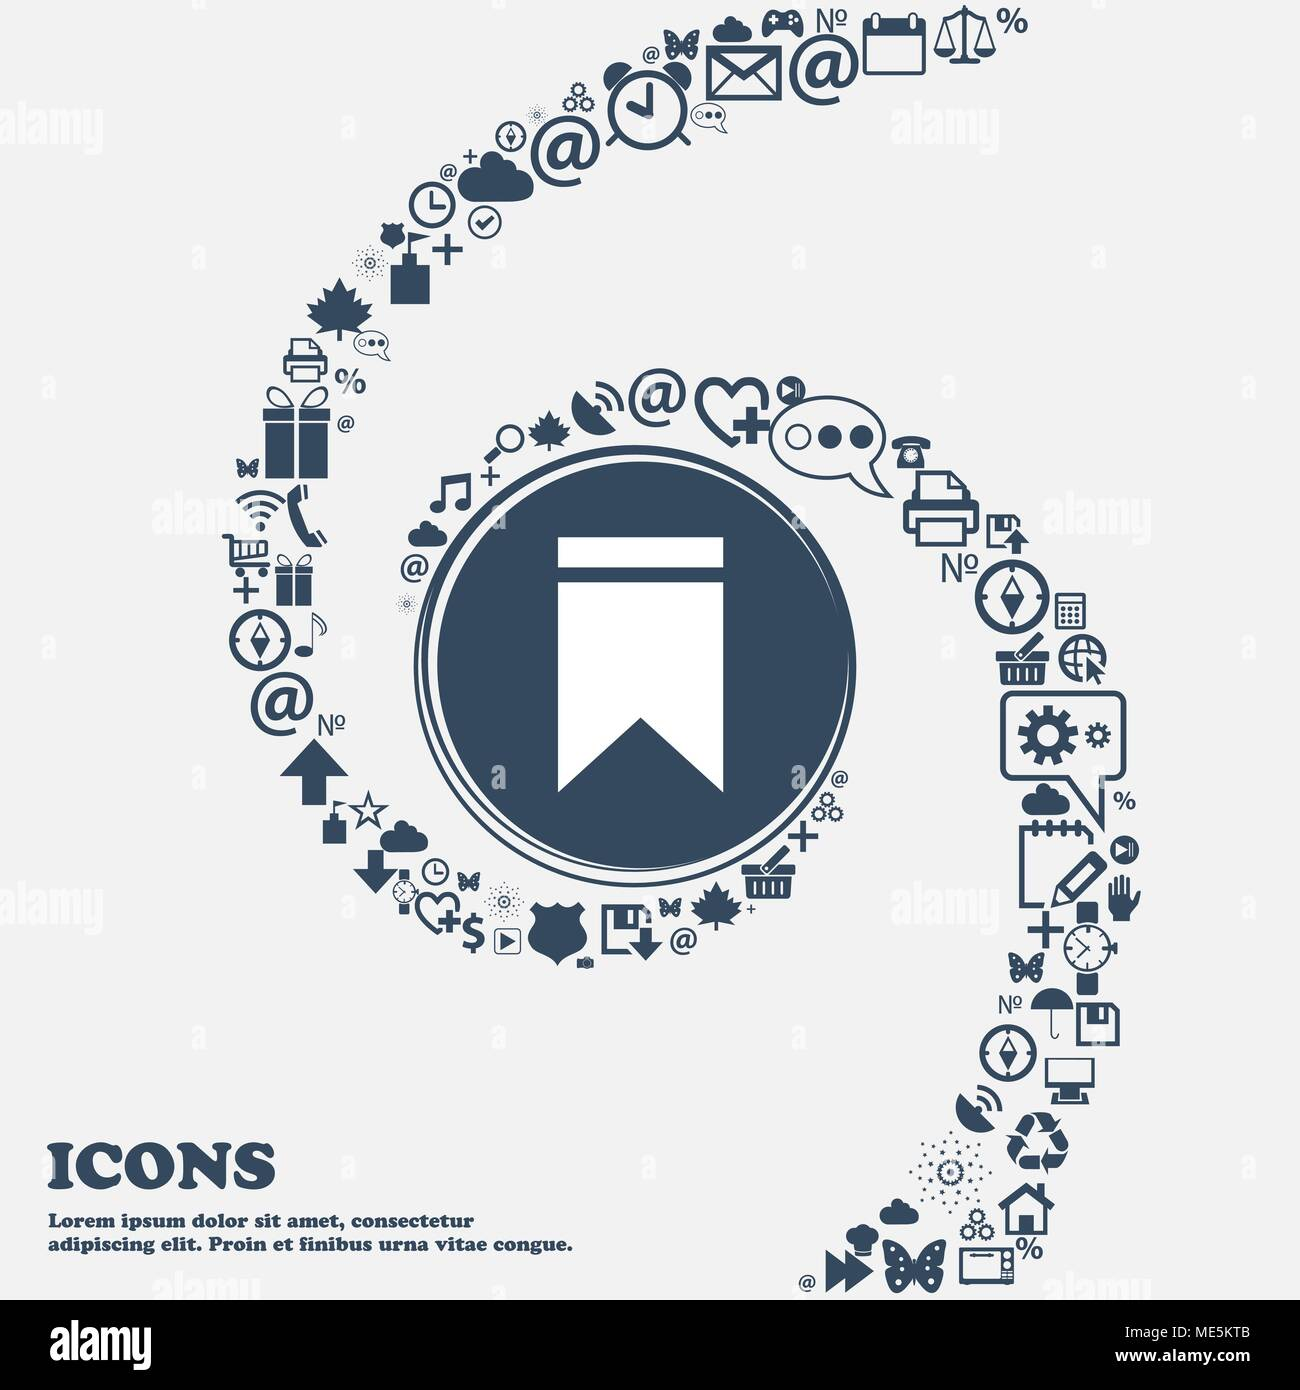 Web stickers tags and banners sale icon sign in the center around